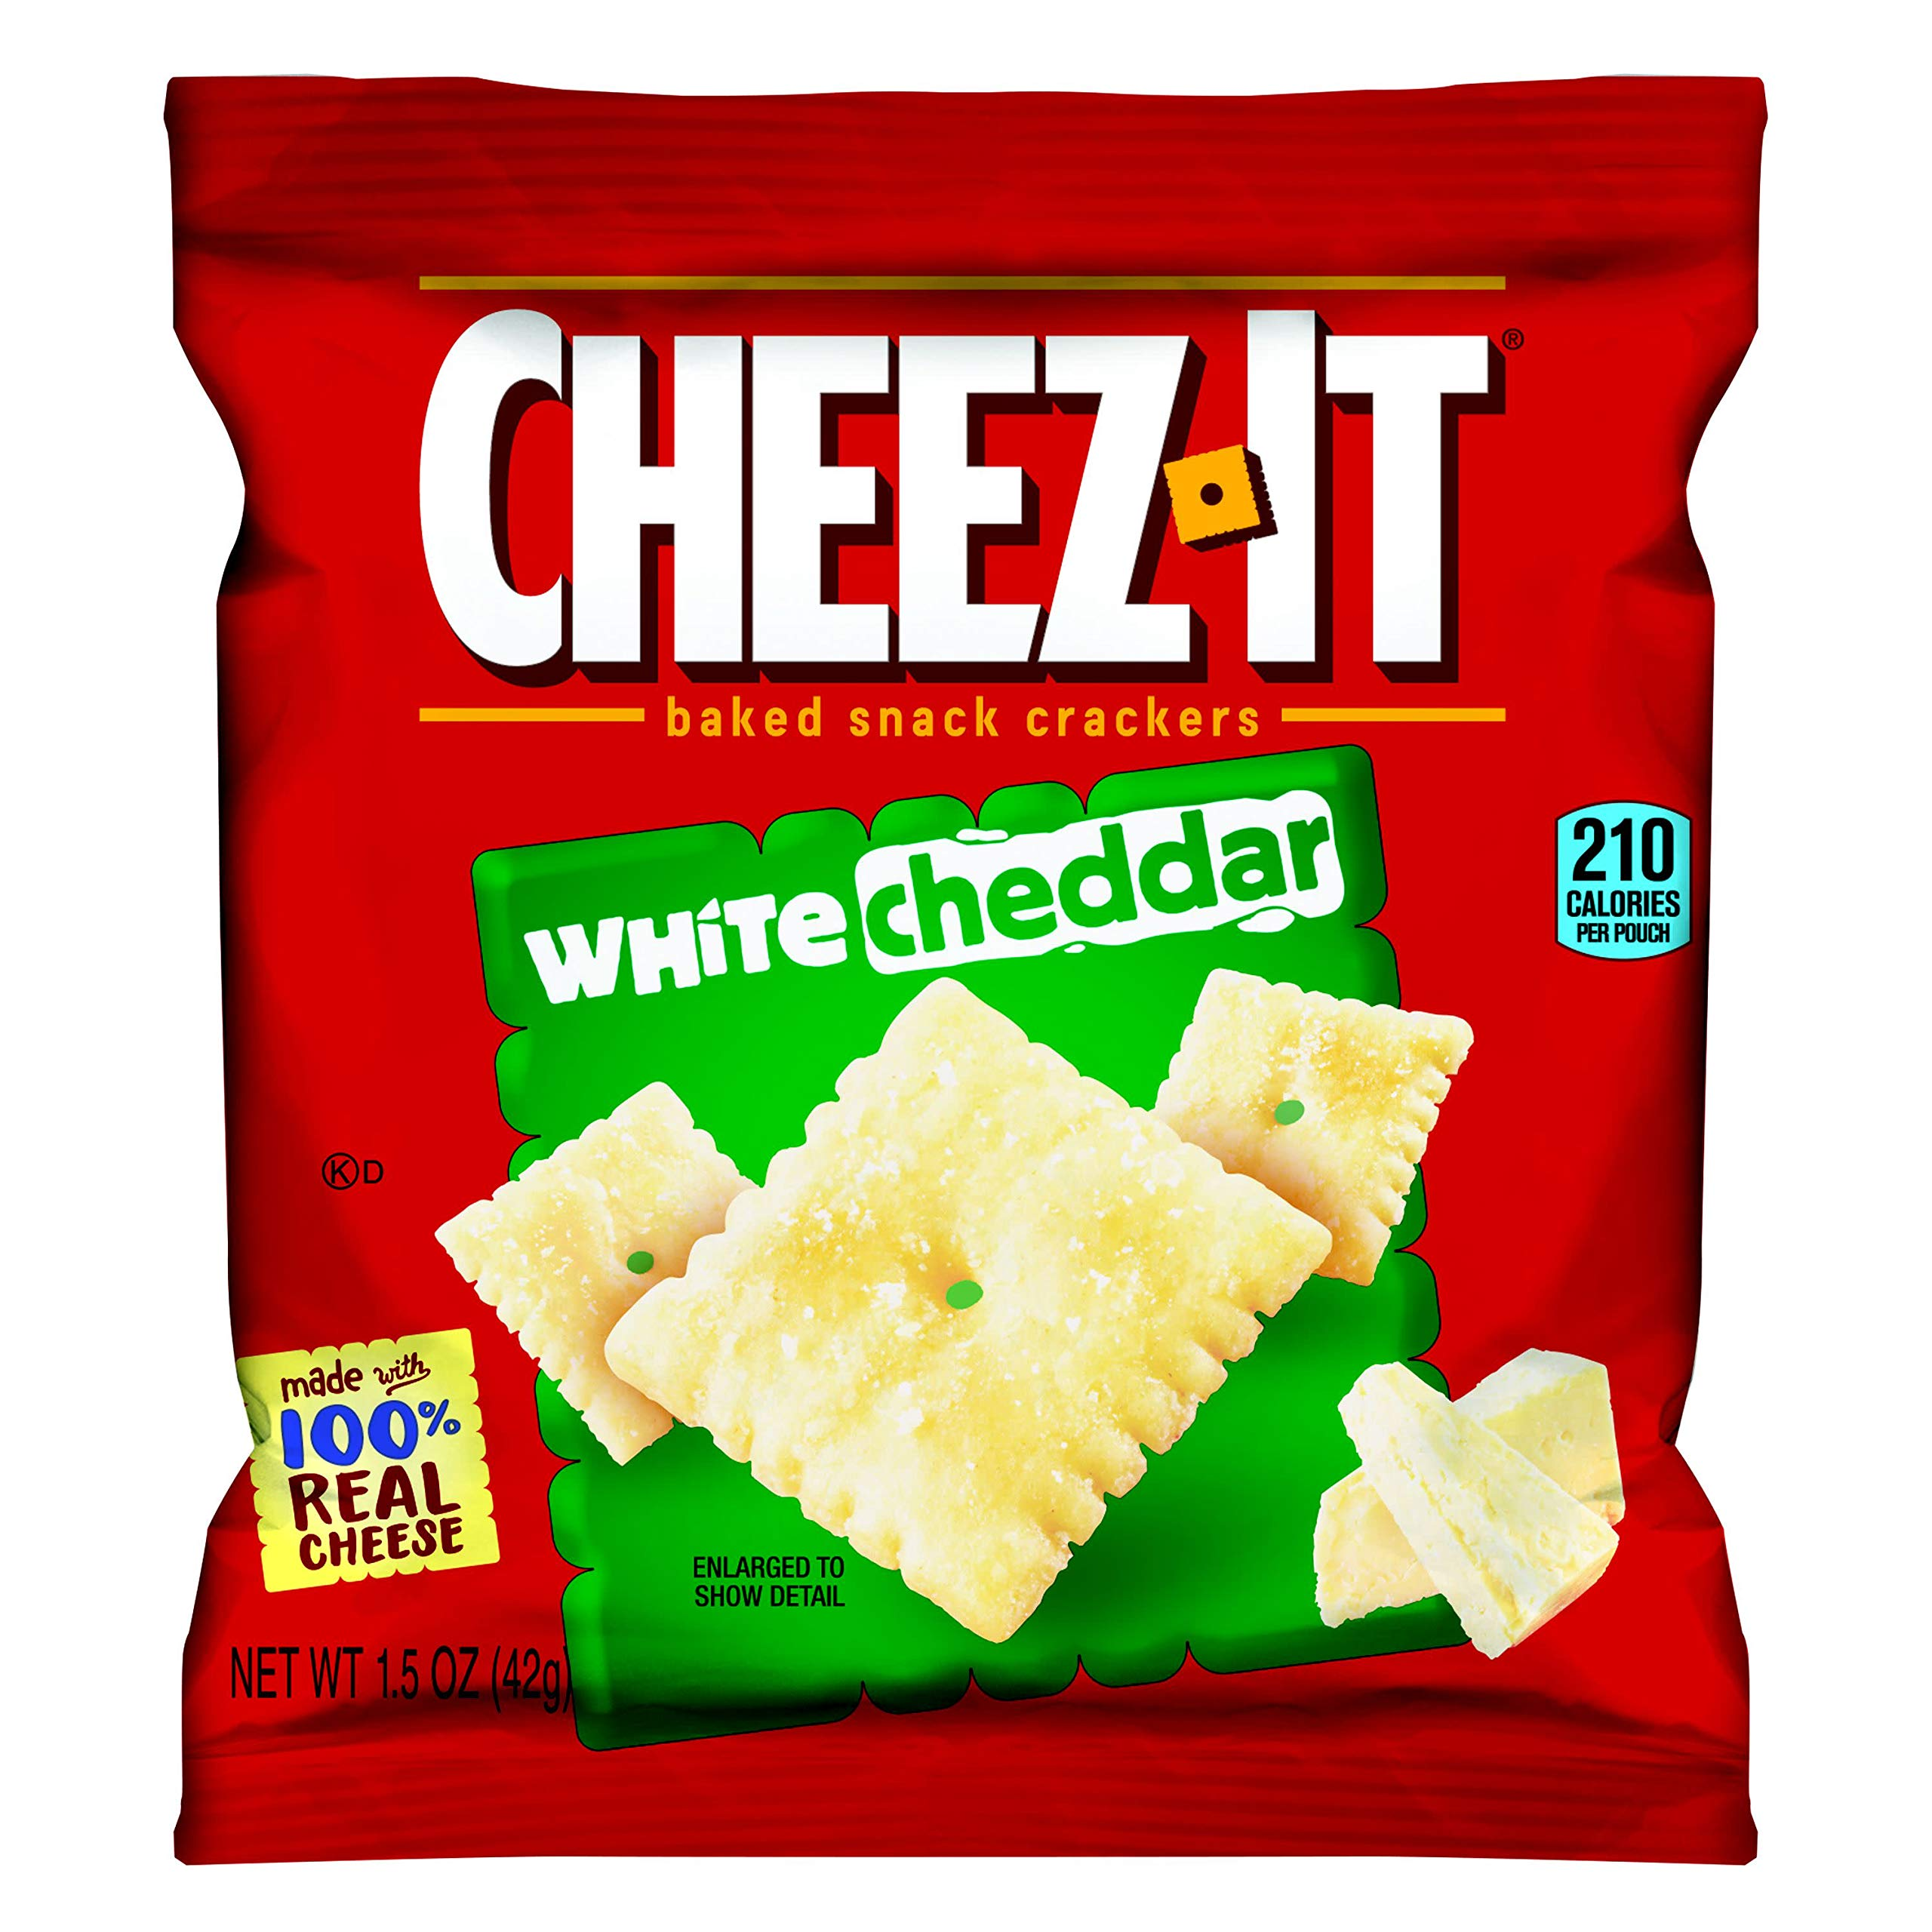 Cheez-It Baked Snack Cheese Crackers, White Cheddar, Single Serve, 1.5 oz Bag(Pack of 60)